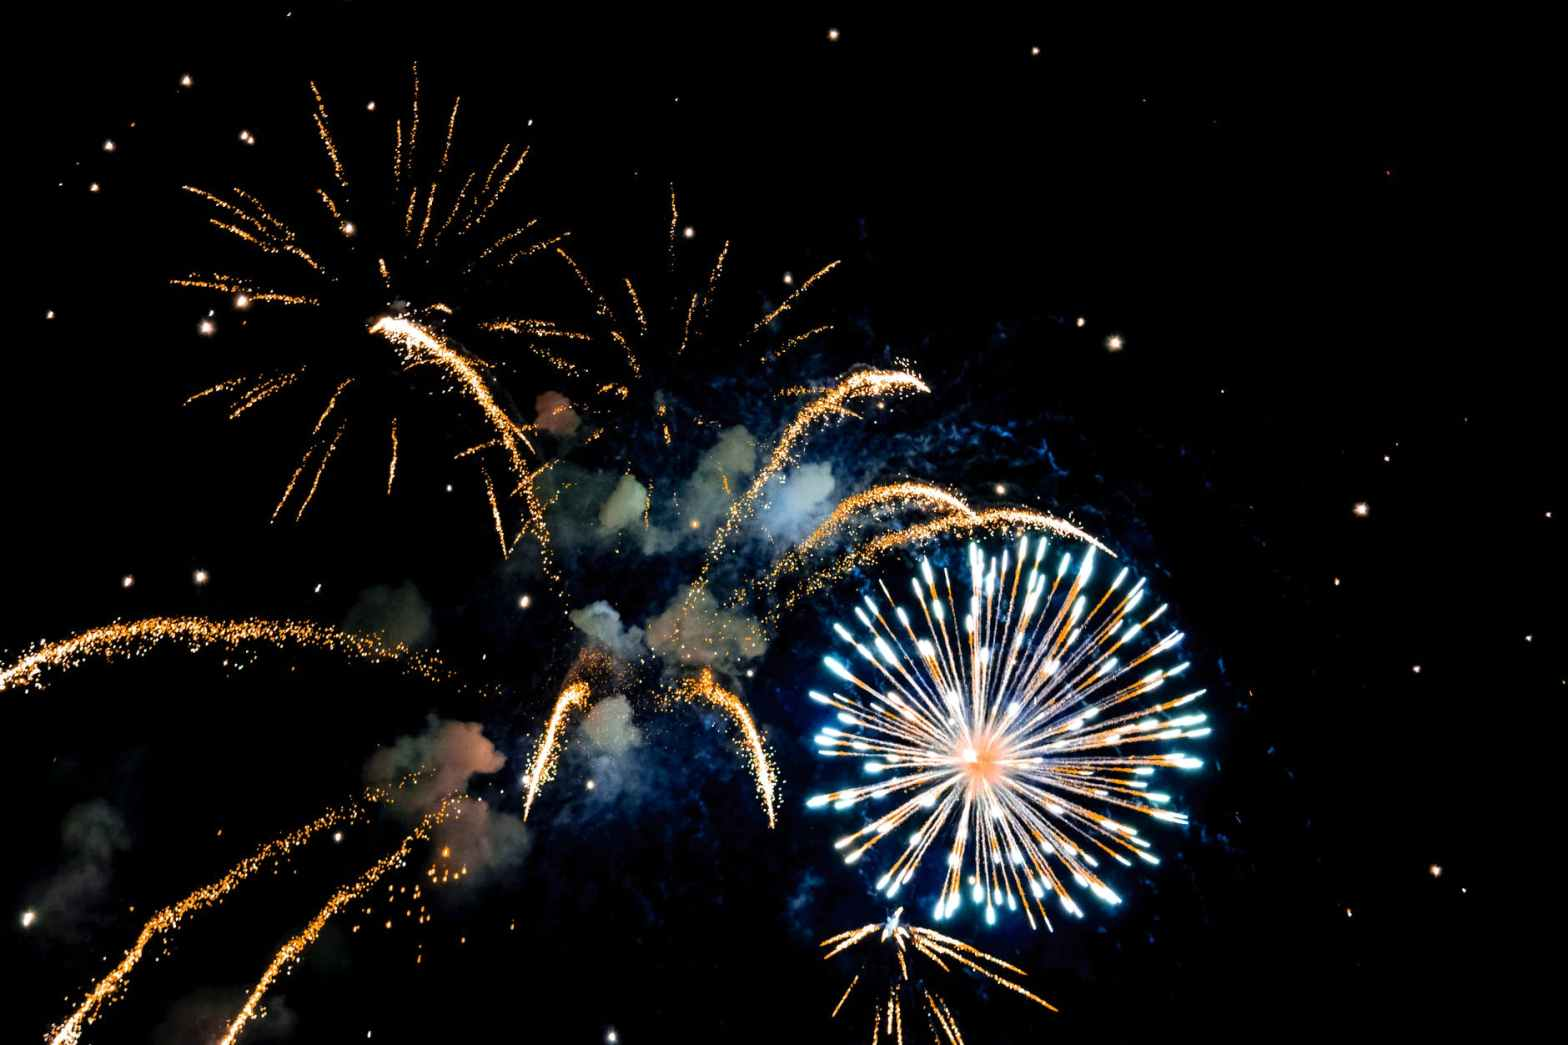 photo of fireworks during nighttime